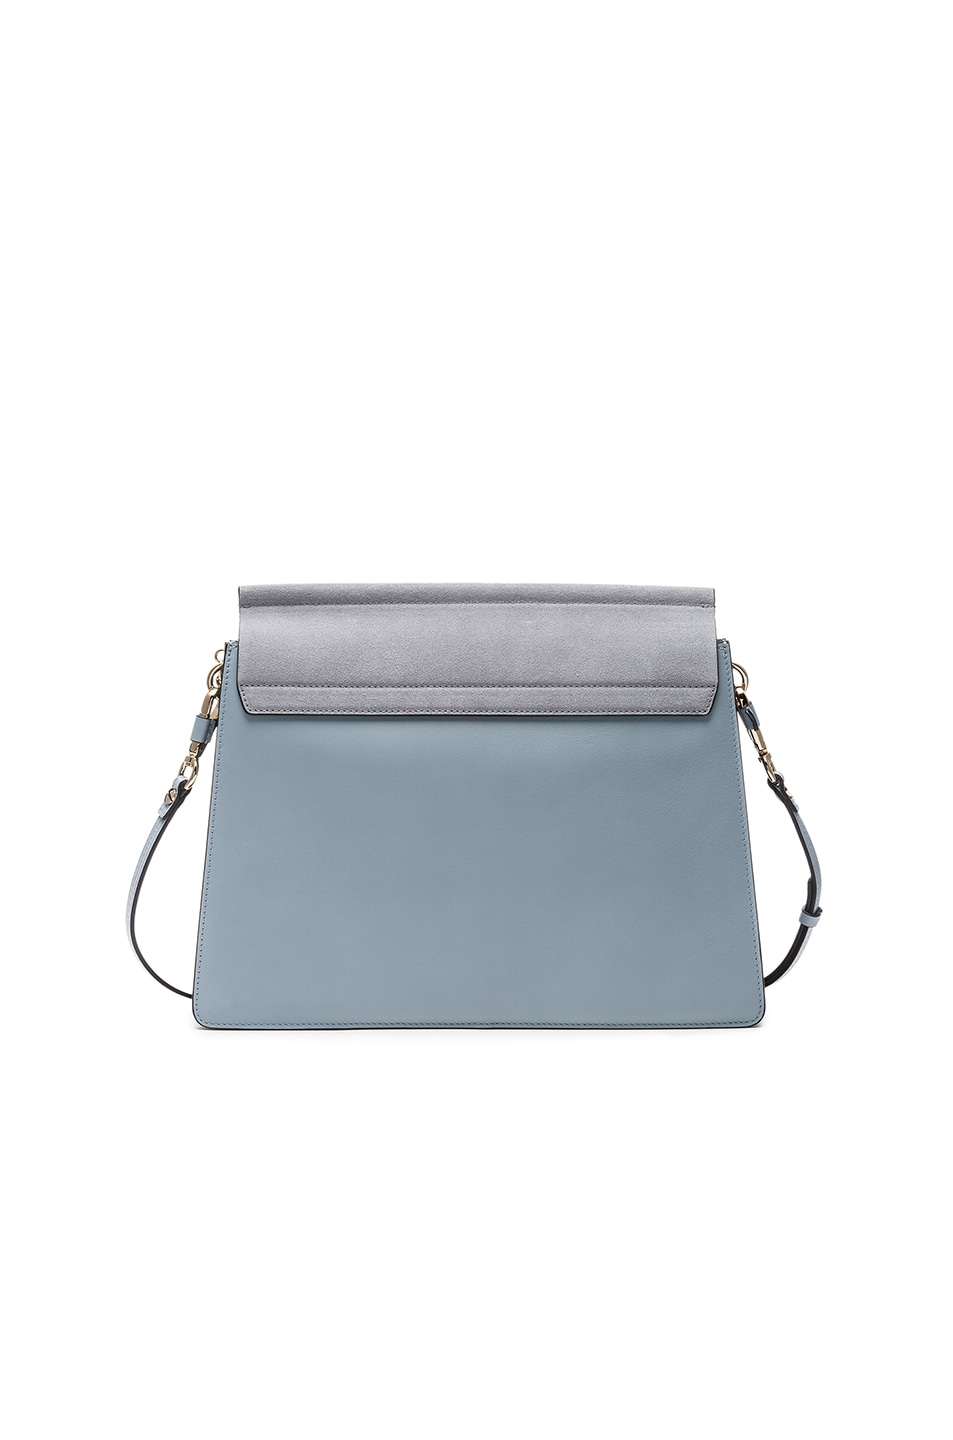 Image 2 of Chloe Medium Leather Faye Bag in Fresh Blue